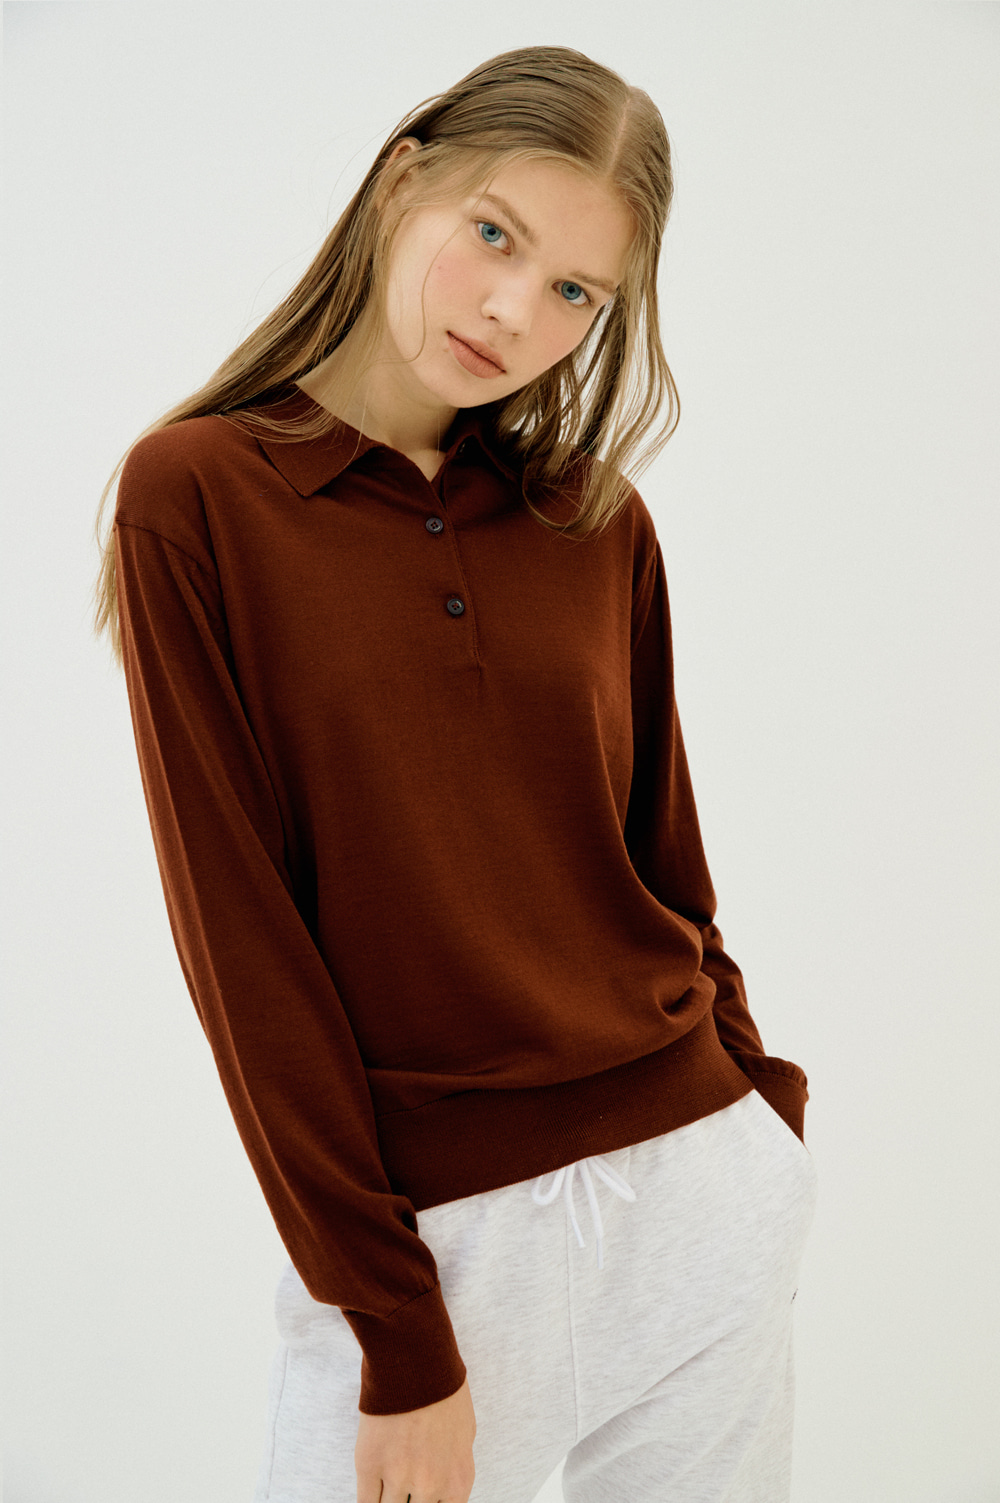 clove - Extrafine Wool Polo _Women (Brick)